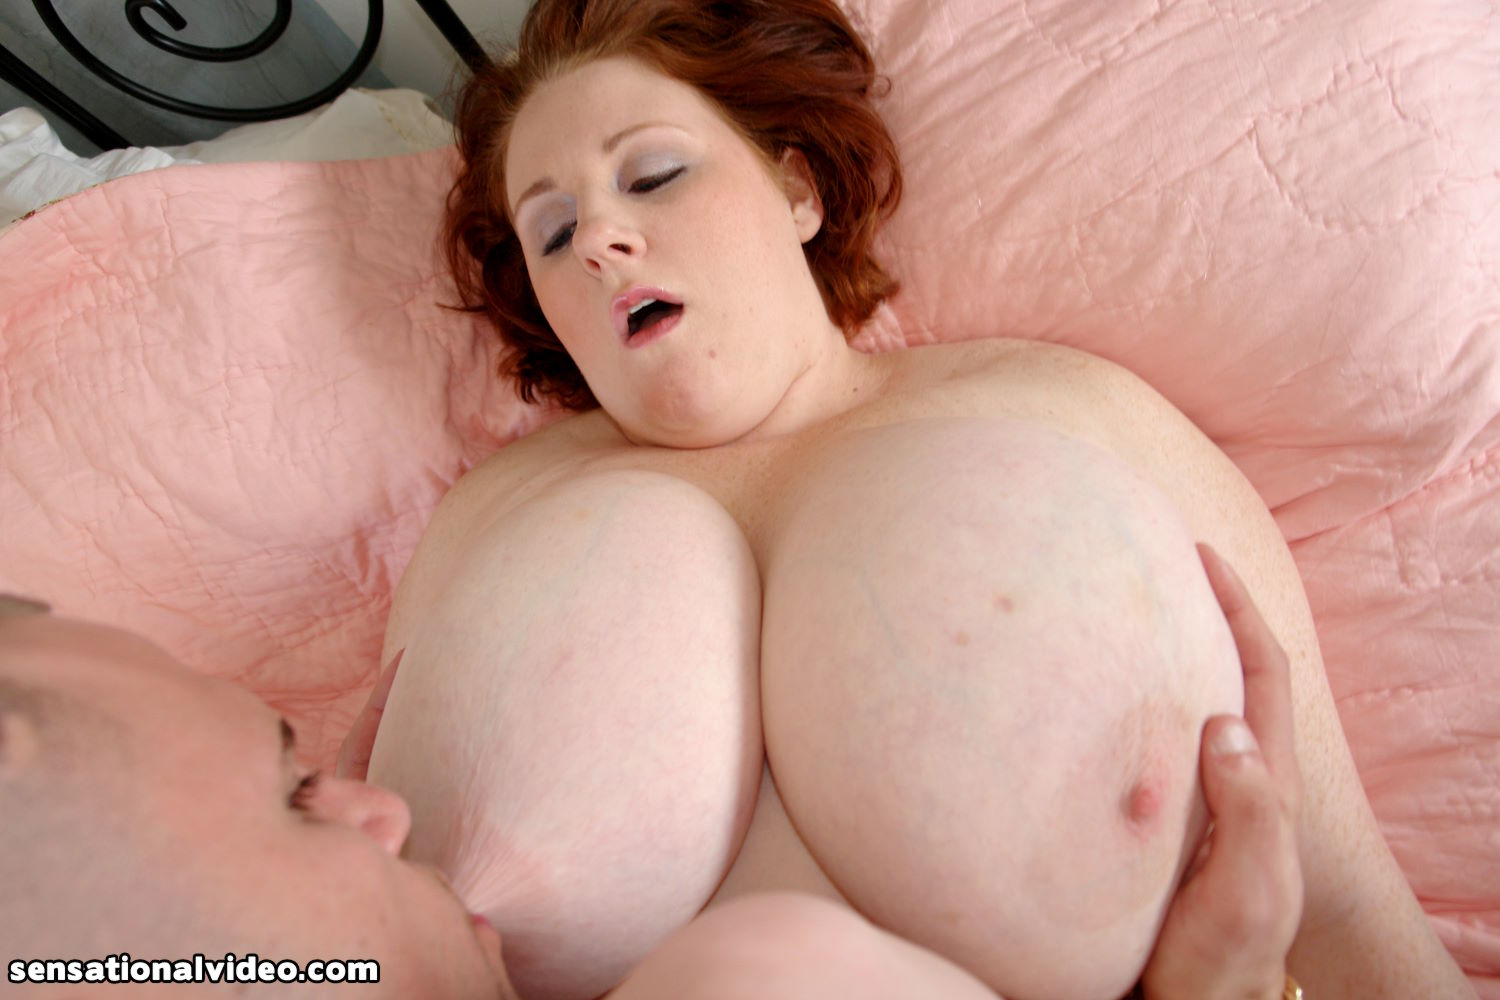 Bbw big boobs movies